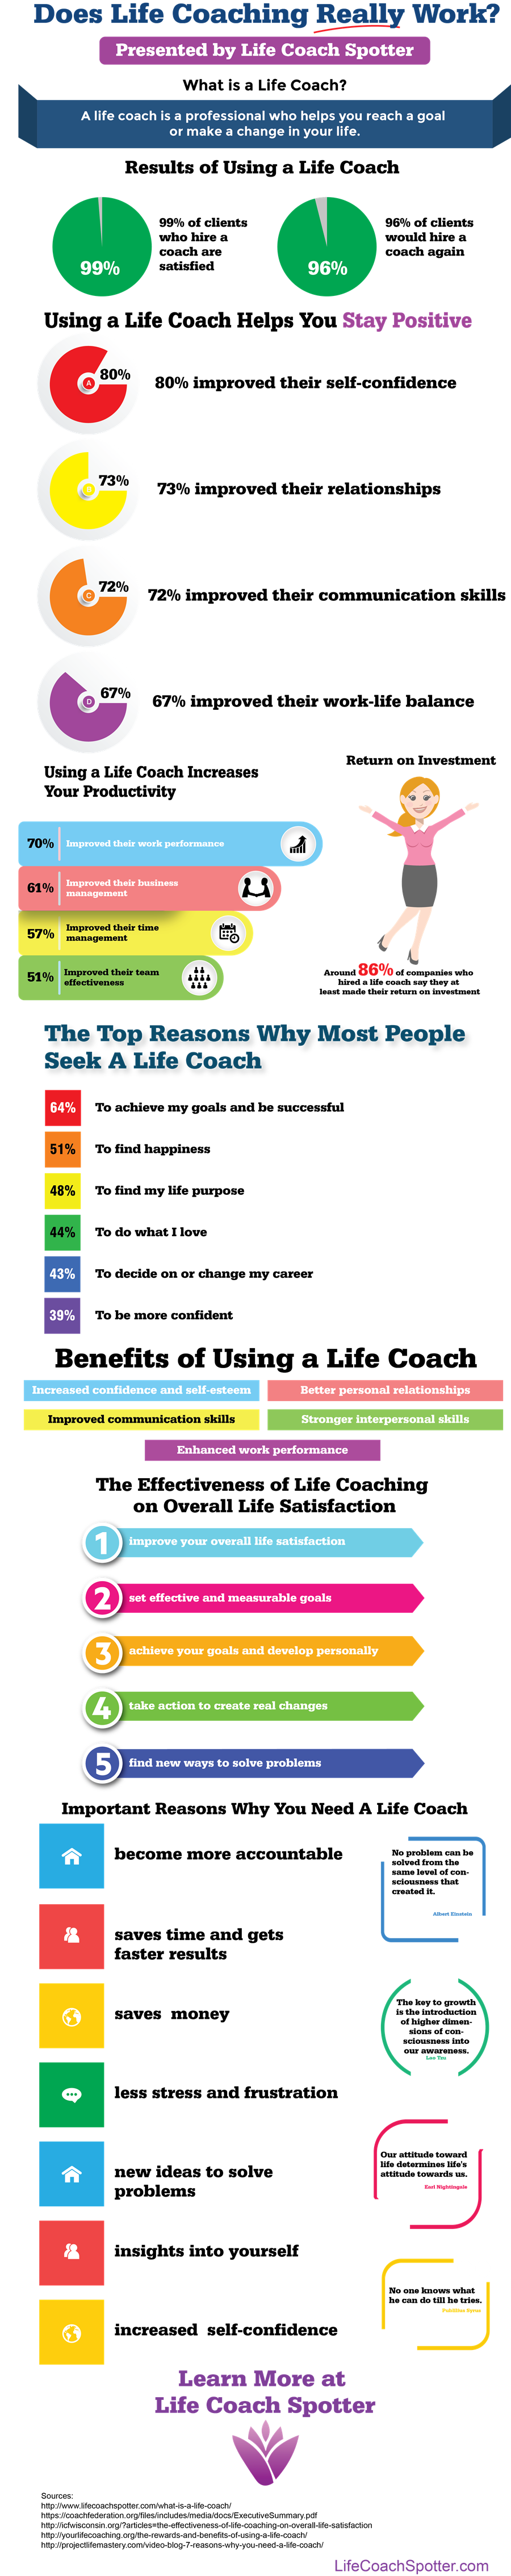 Does-Life-Coaching-Really-Work-Tom-Casano-900.png